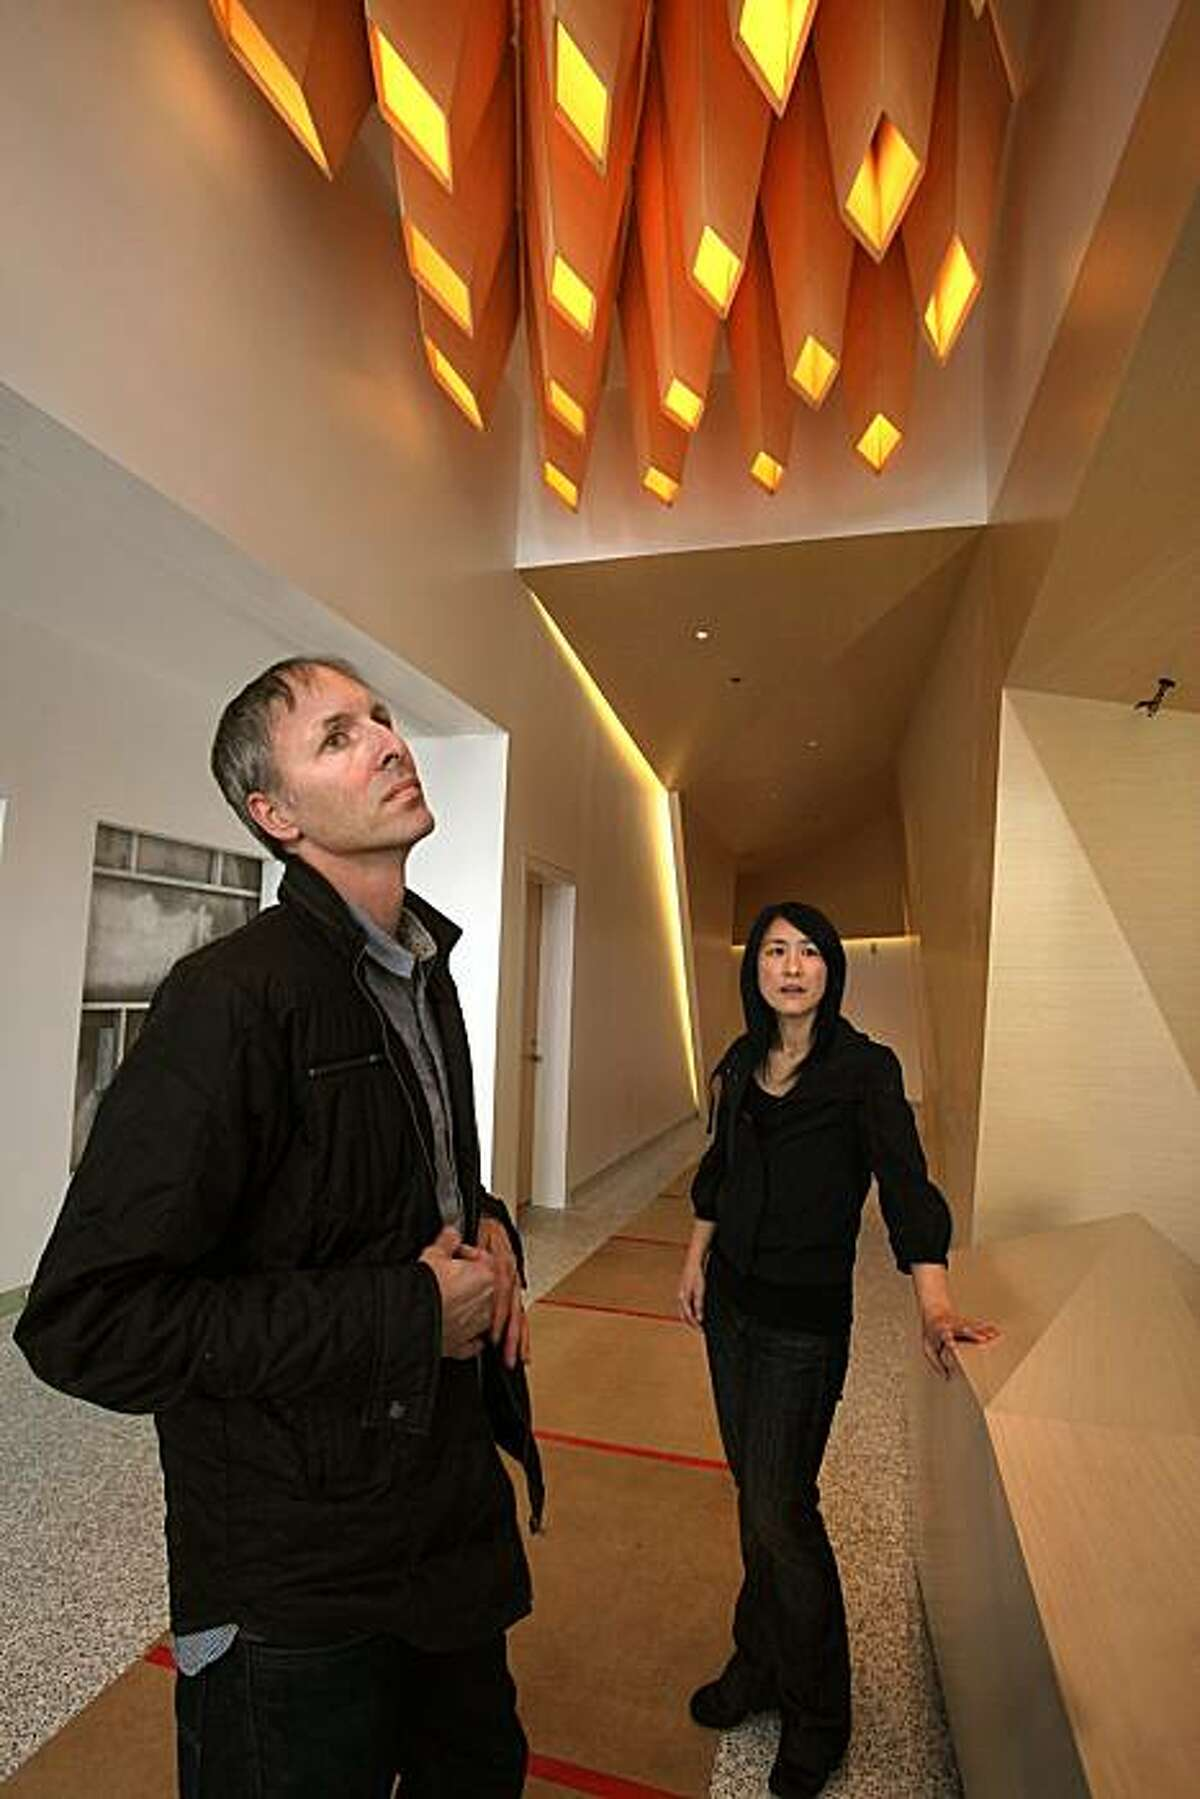 Architects Craig Scott and Lisa Iwamoto have handmade coffered overhead lighting, a custom made desk, and custom made walls with recess lighting in the lobby of their first downtown San Francisco project in progress at One Kearny on Tuesday, March 23, 2010.